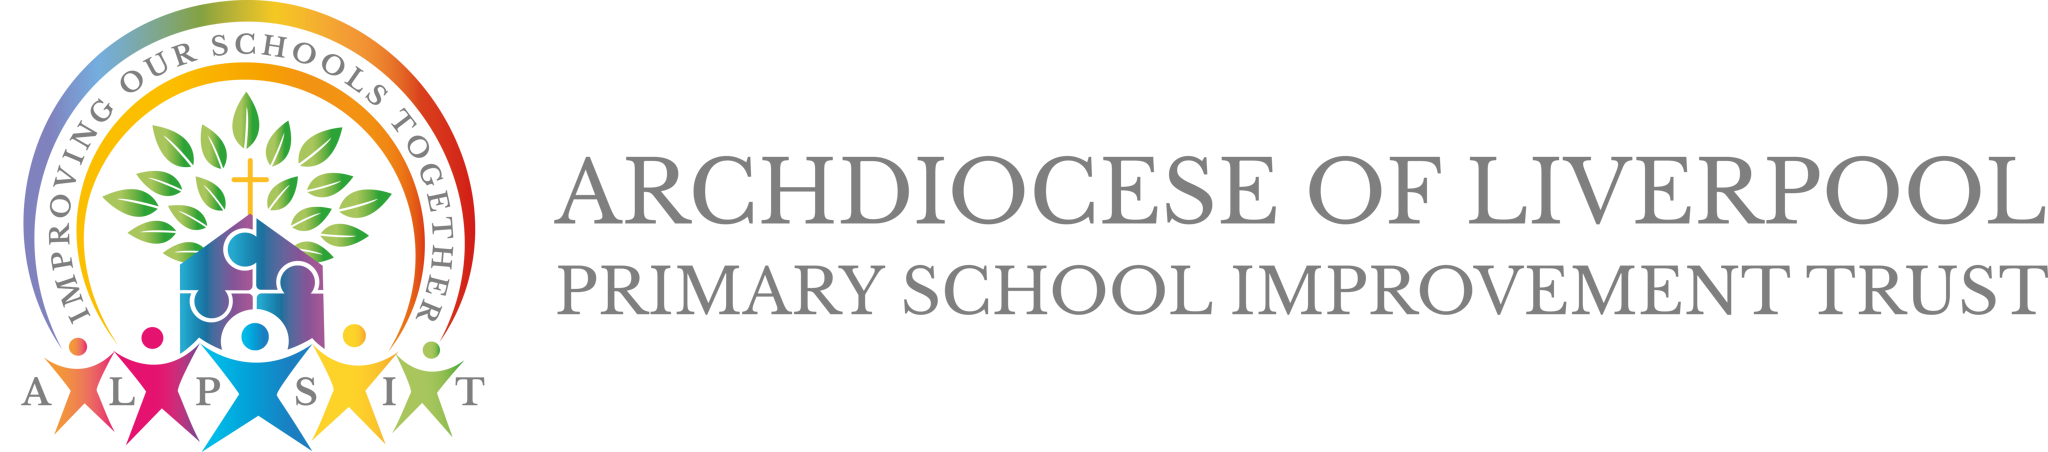 Archdiocese of Liverpool Primary School Improvement Trust